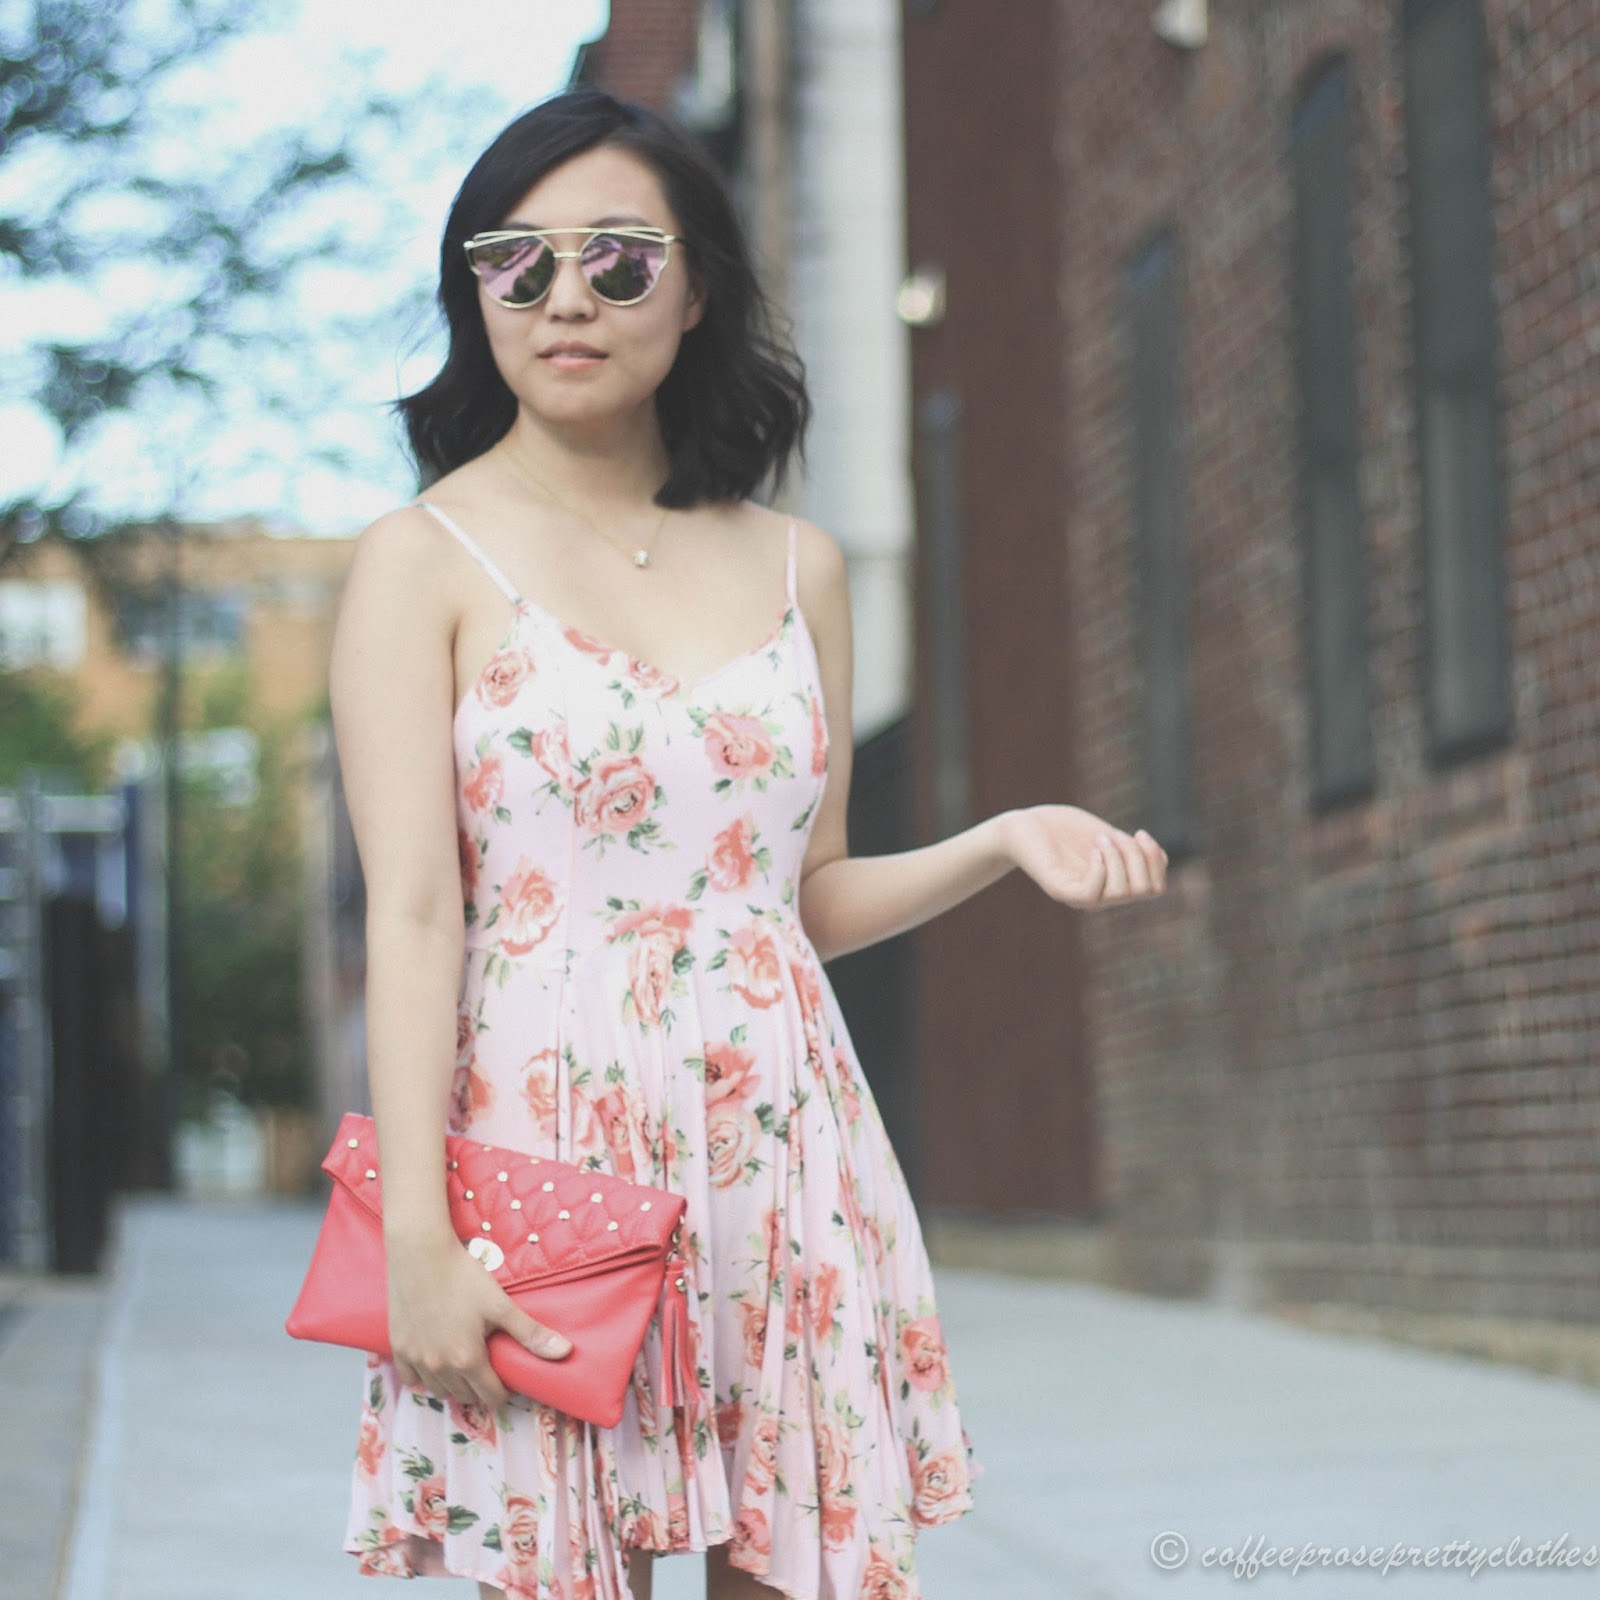 Rose gold cat eye sunglasses, floral dress, handkerchief hem, uneven hemline dress, sandals, coral clutch